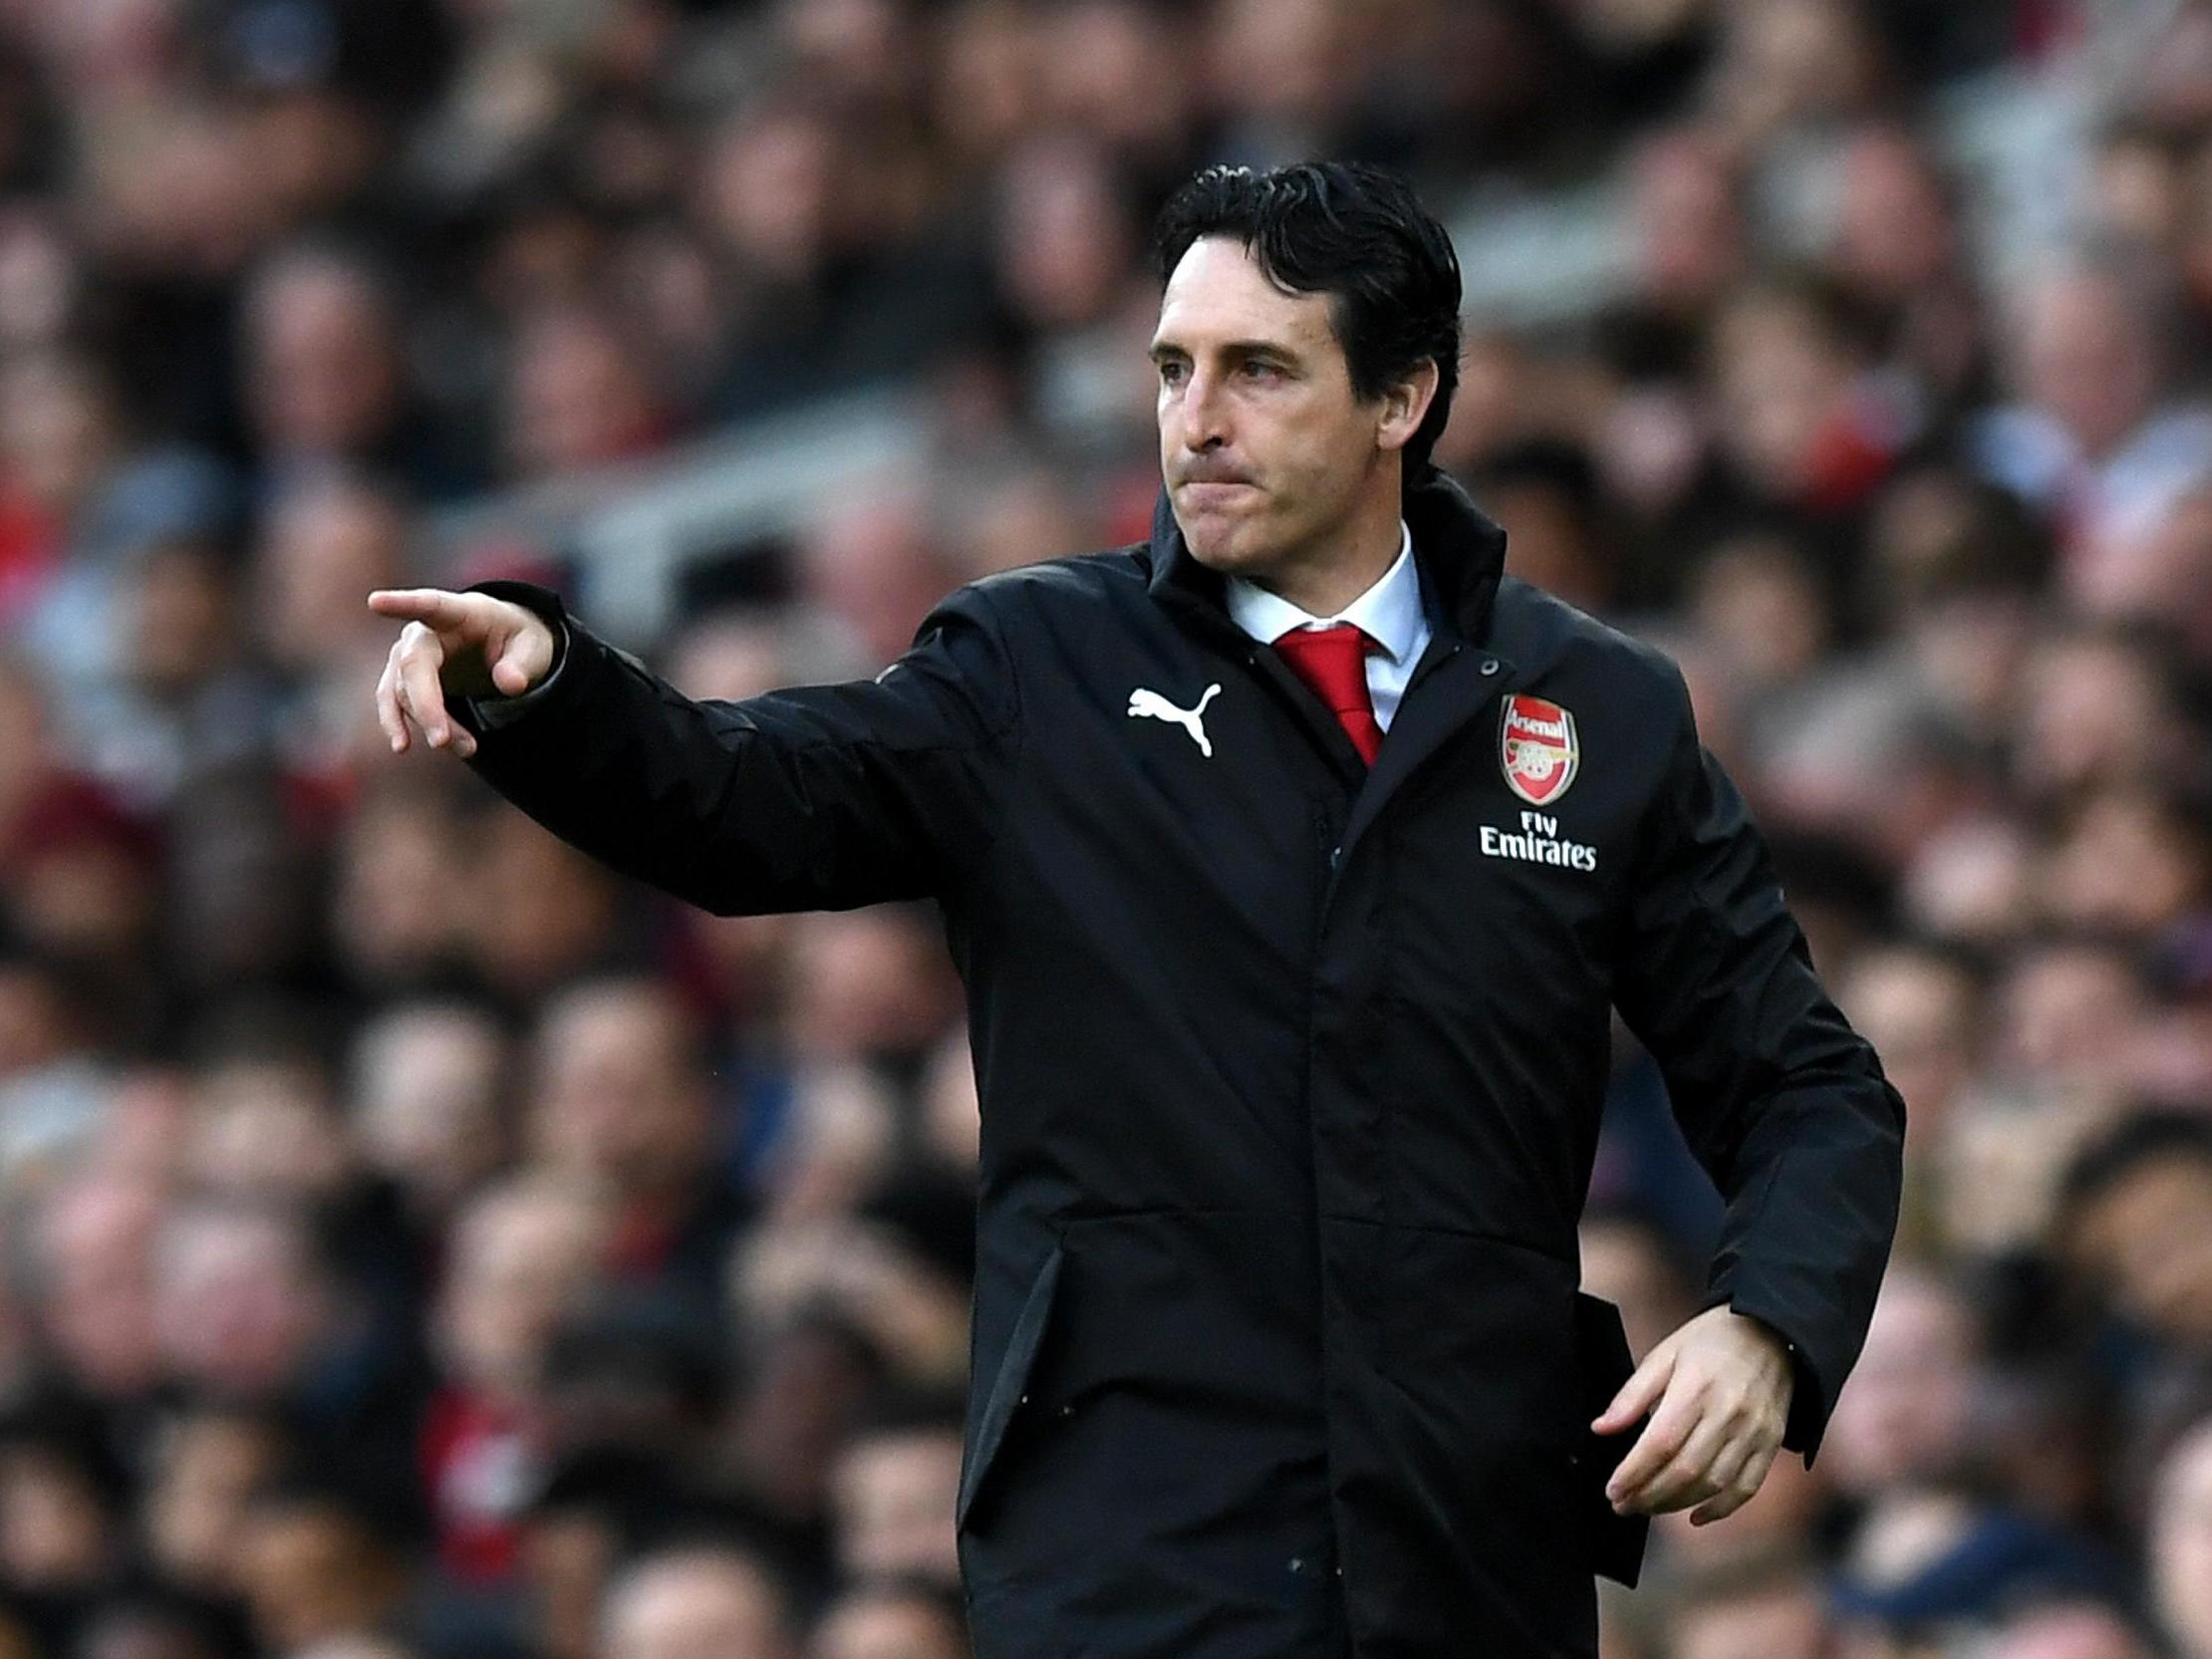 Unai Emery speaks on removing Aubameyang from Arsenal penalty takers